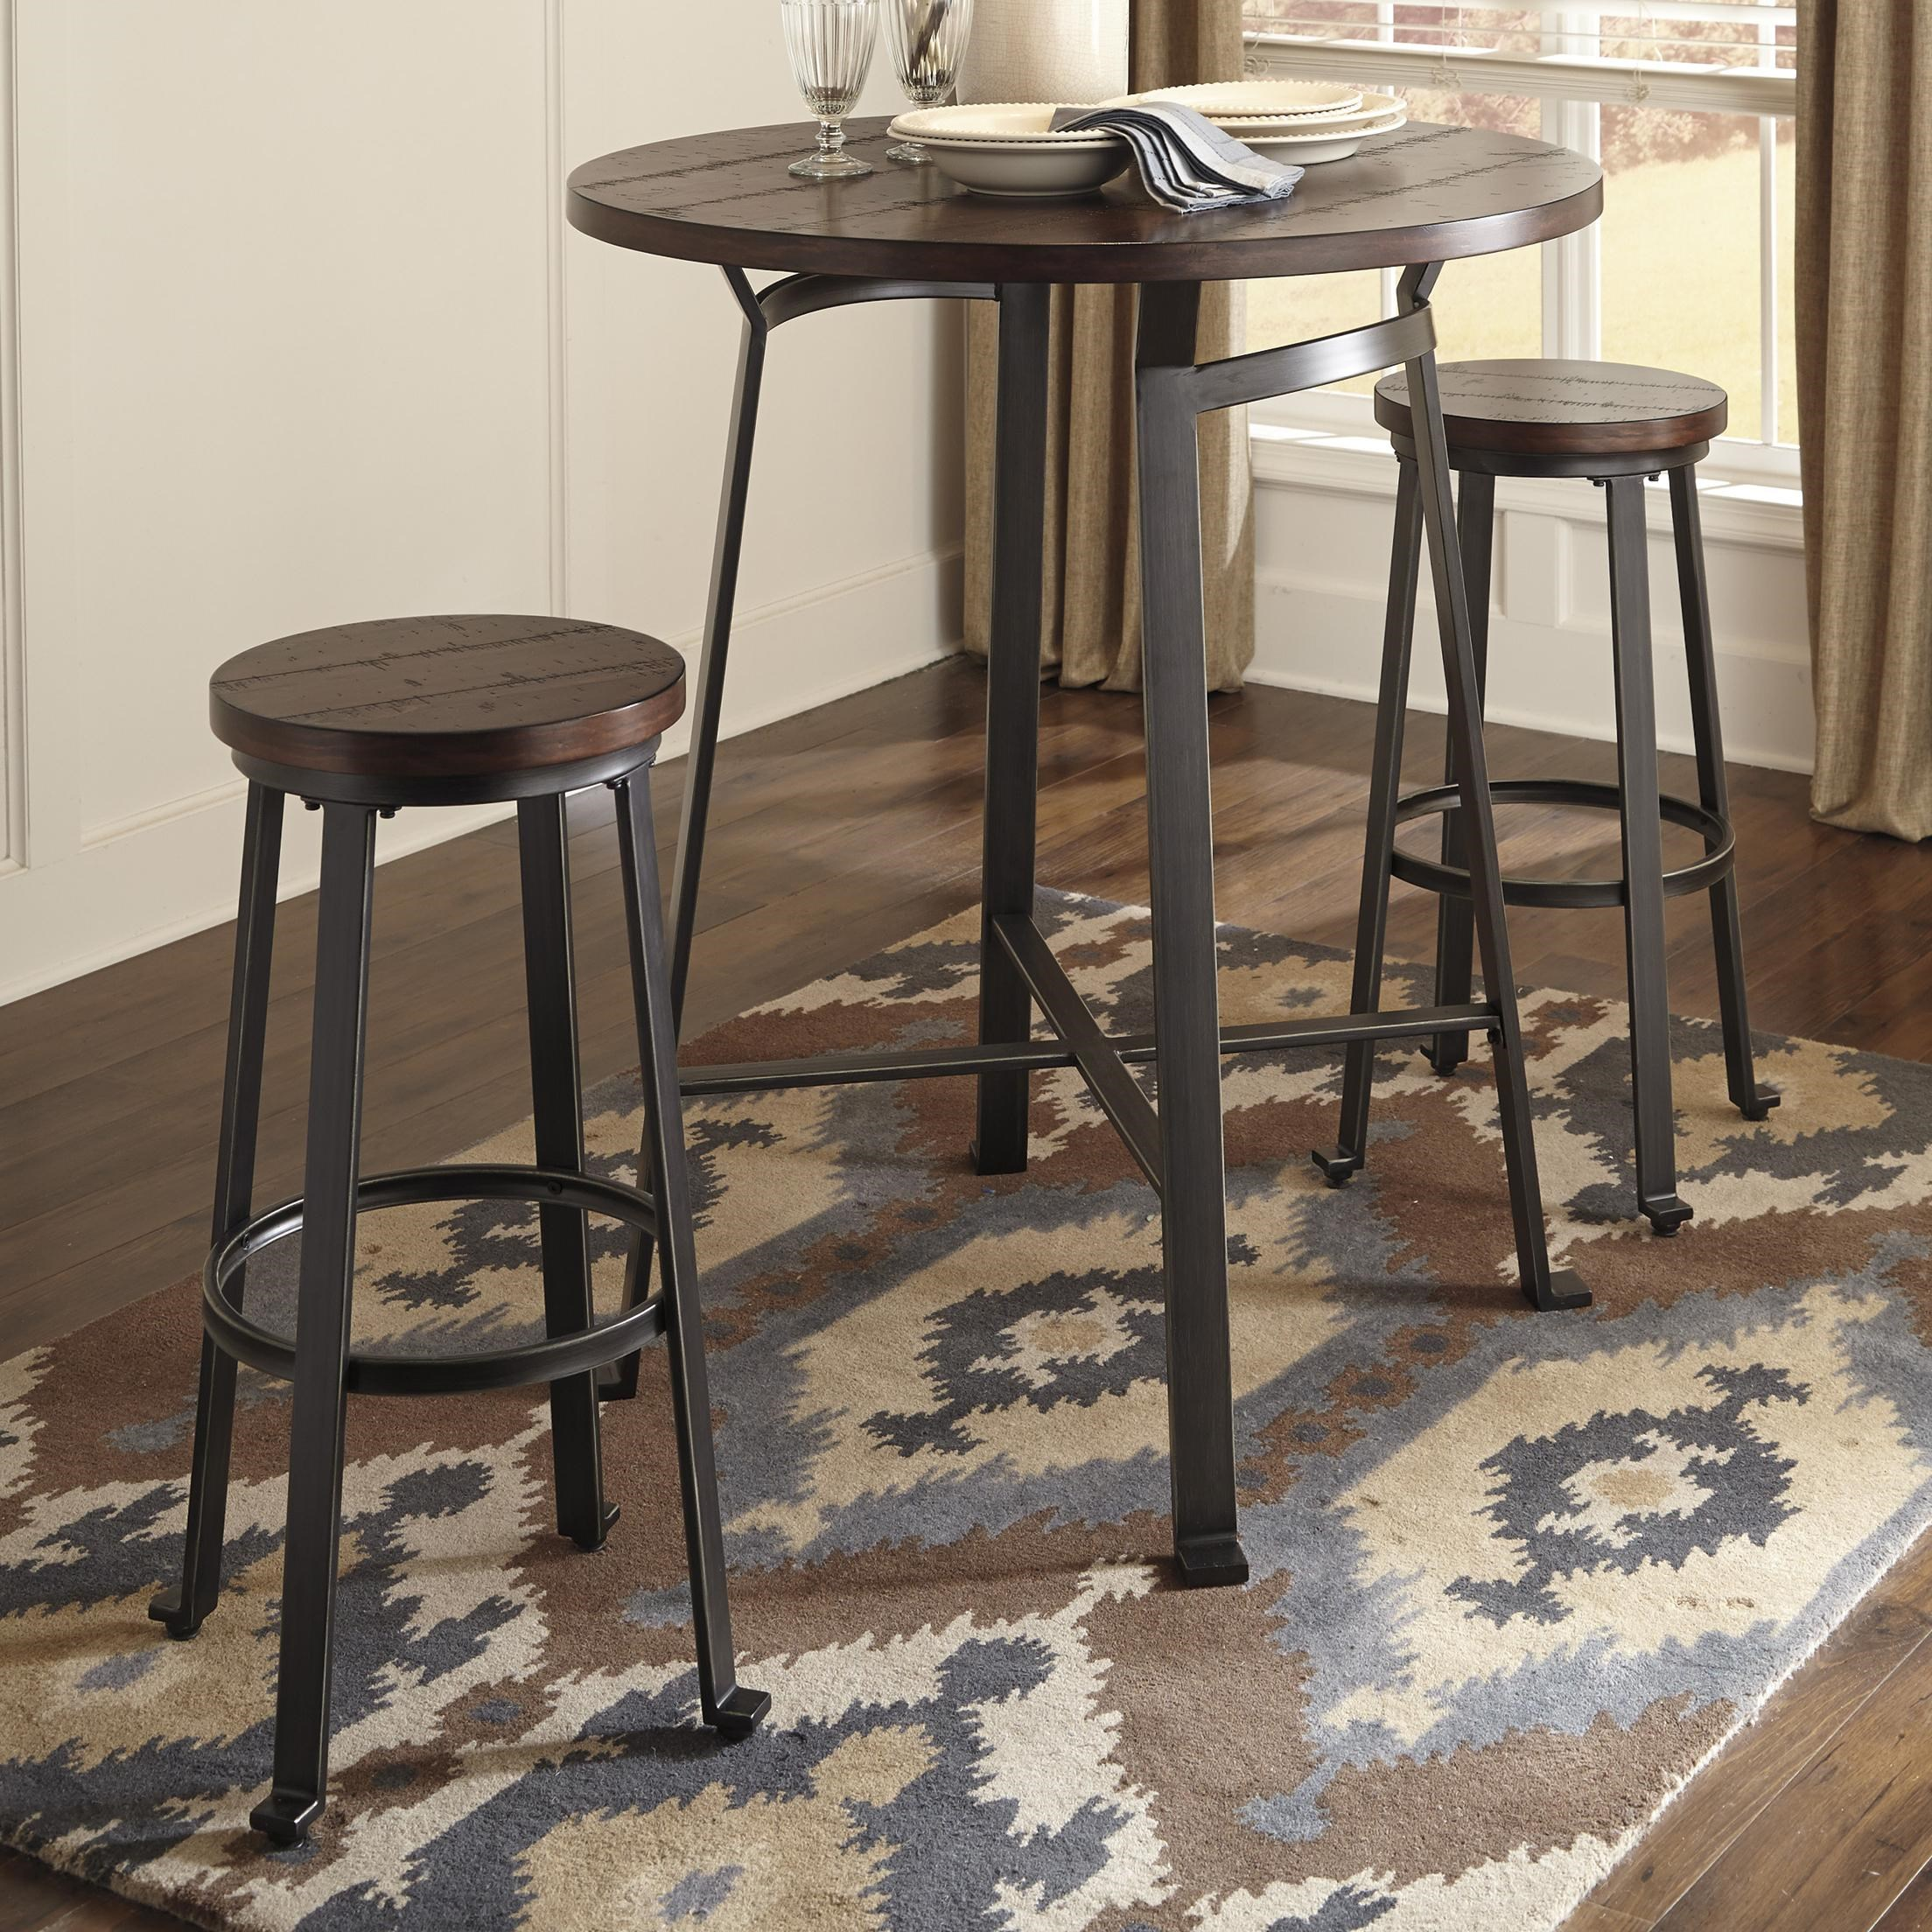 signature design by ashley challiman 3piece round bar table set household furniture pub table and stool set